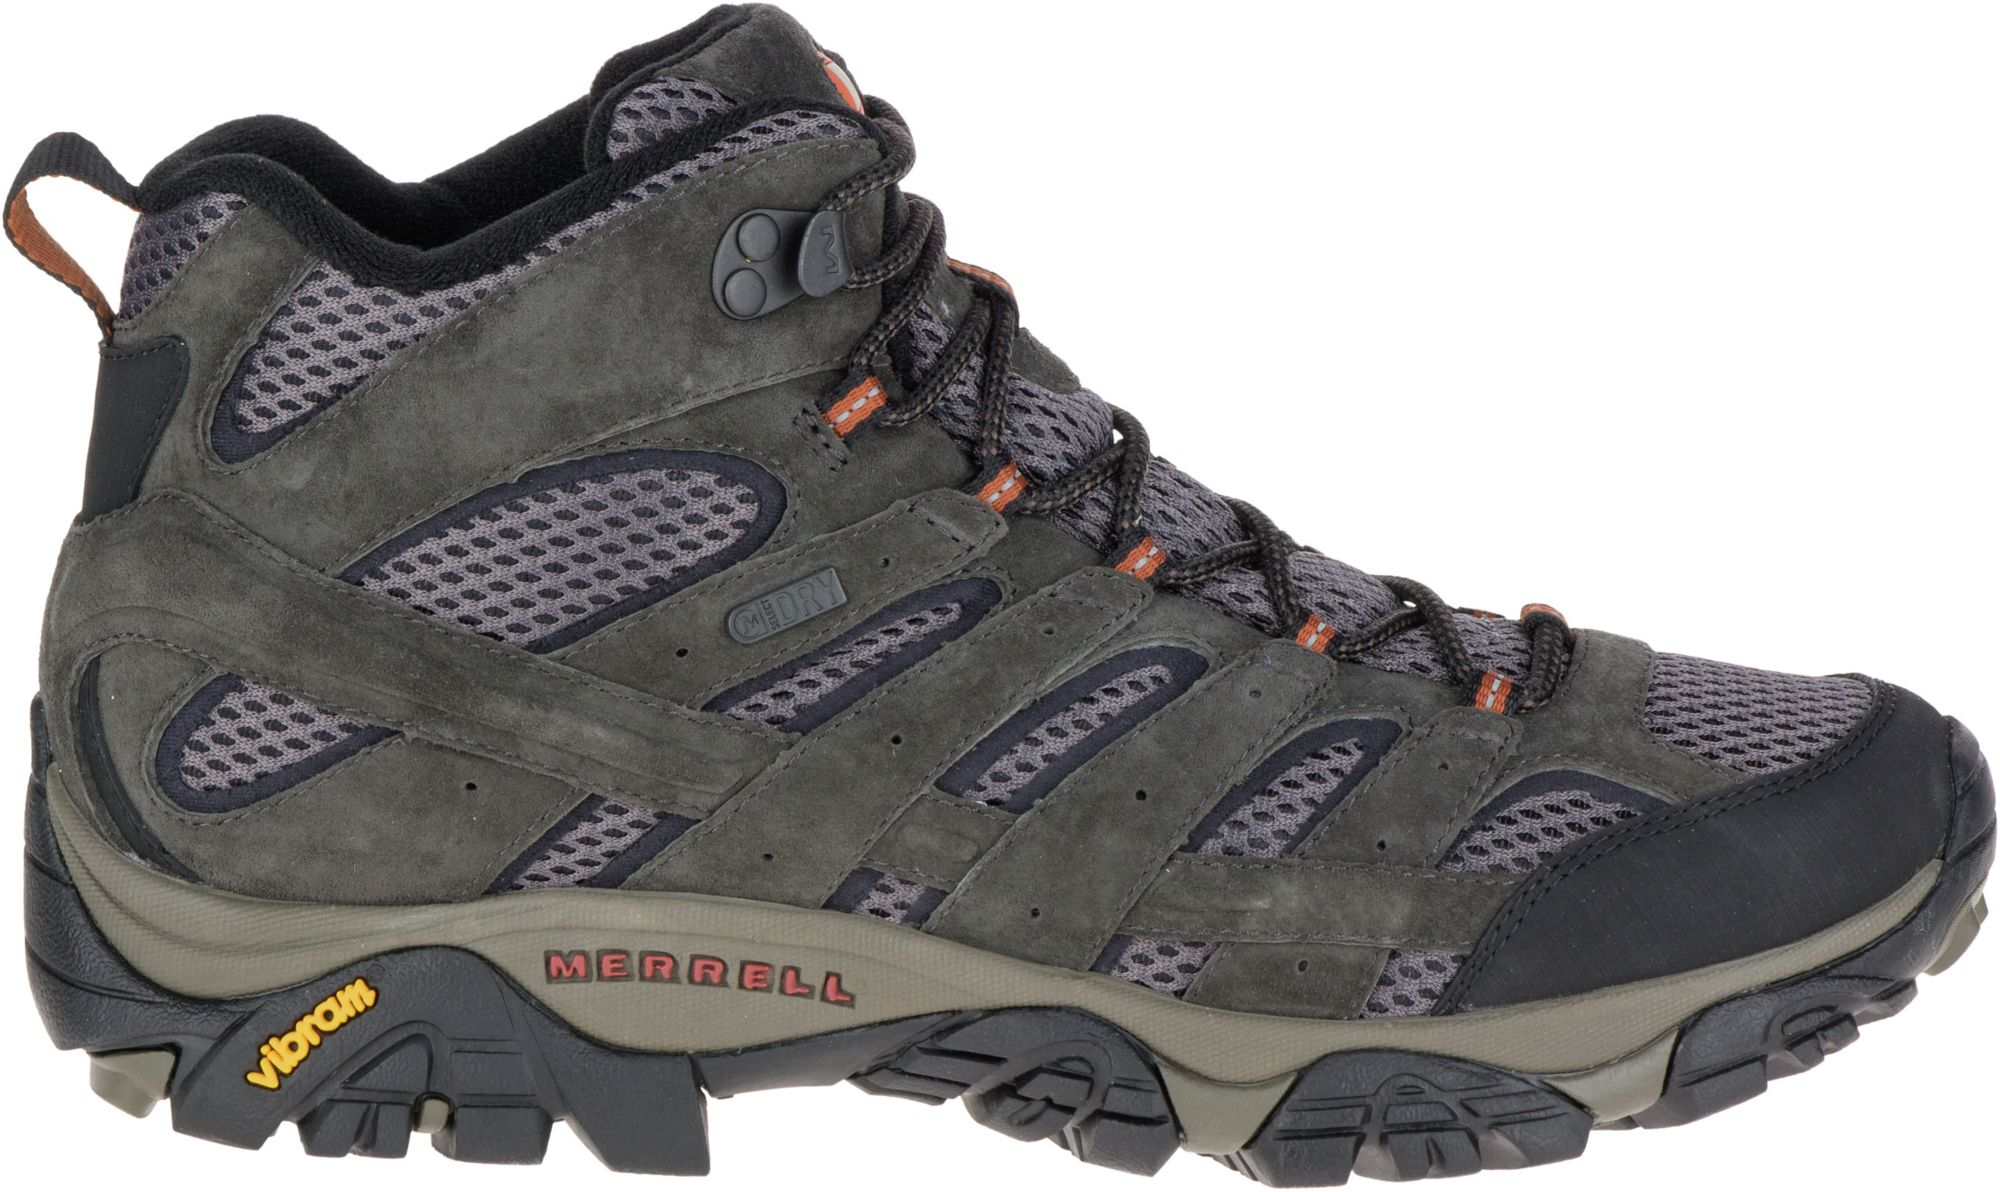 mens waterproof boots merrell menu0027s moab 2 mid waterproof hiking boots | dicku0027s sporting goods ektqypc